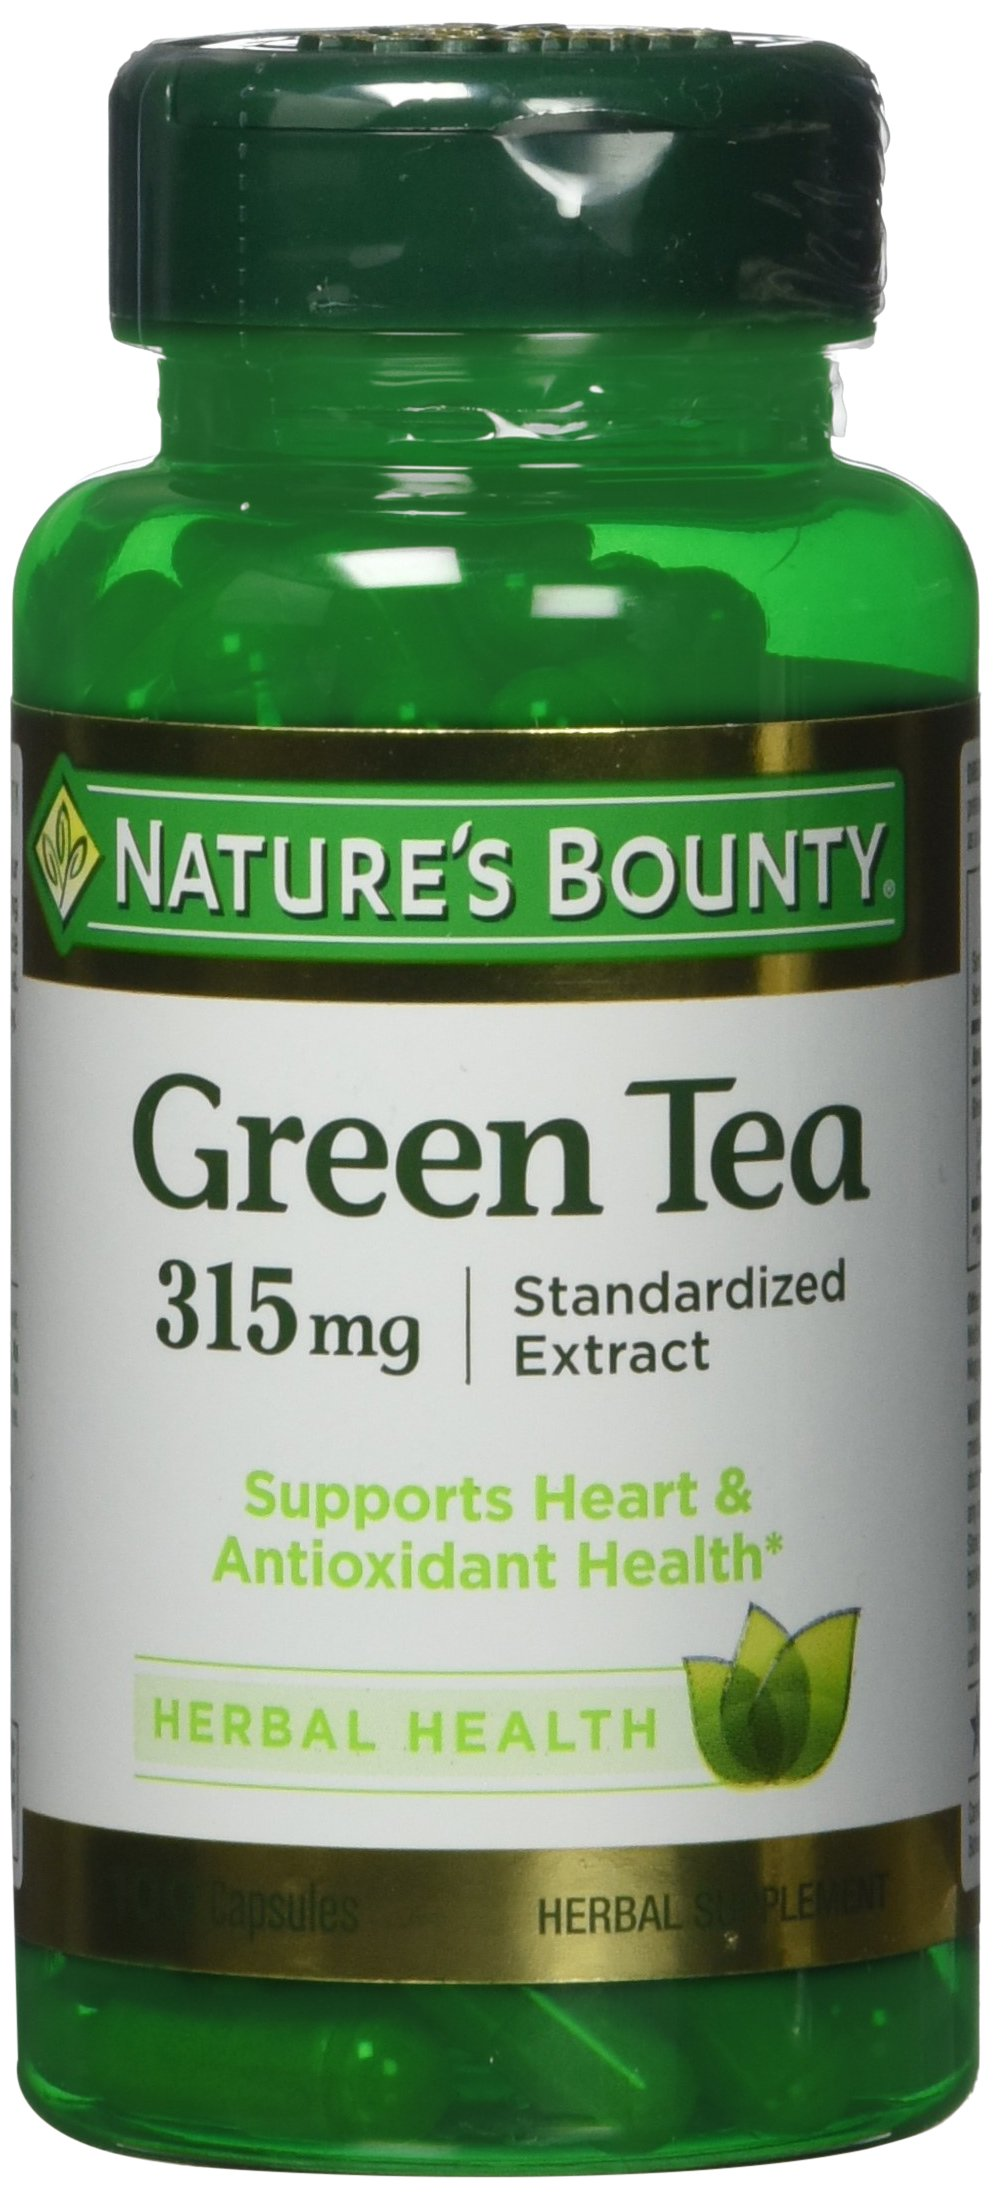 Nature's Bounty Green Tea Extract 315 mg (Contains EGCG), 200 Capsules (2 X 100 Count Bottles)